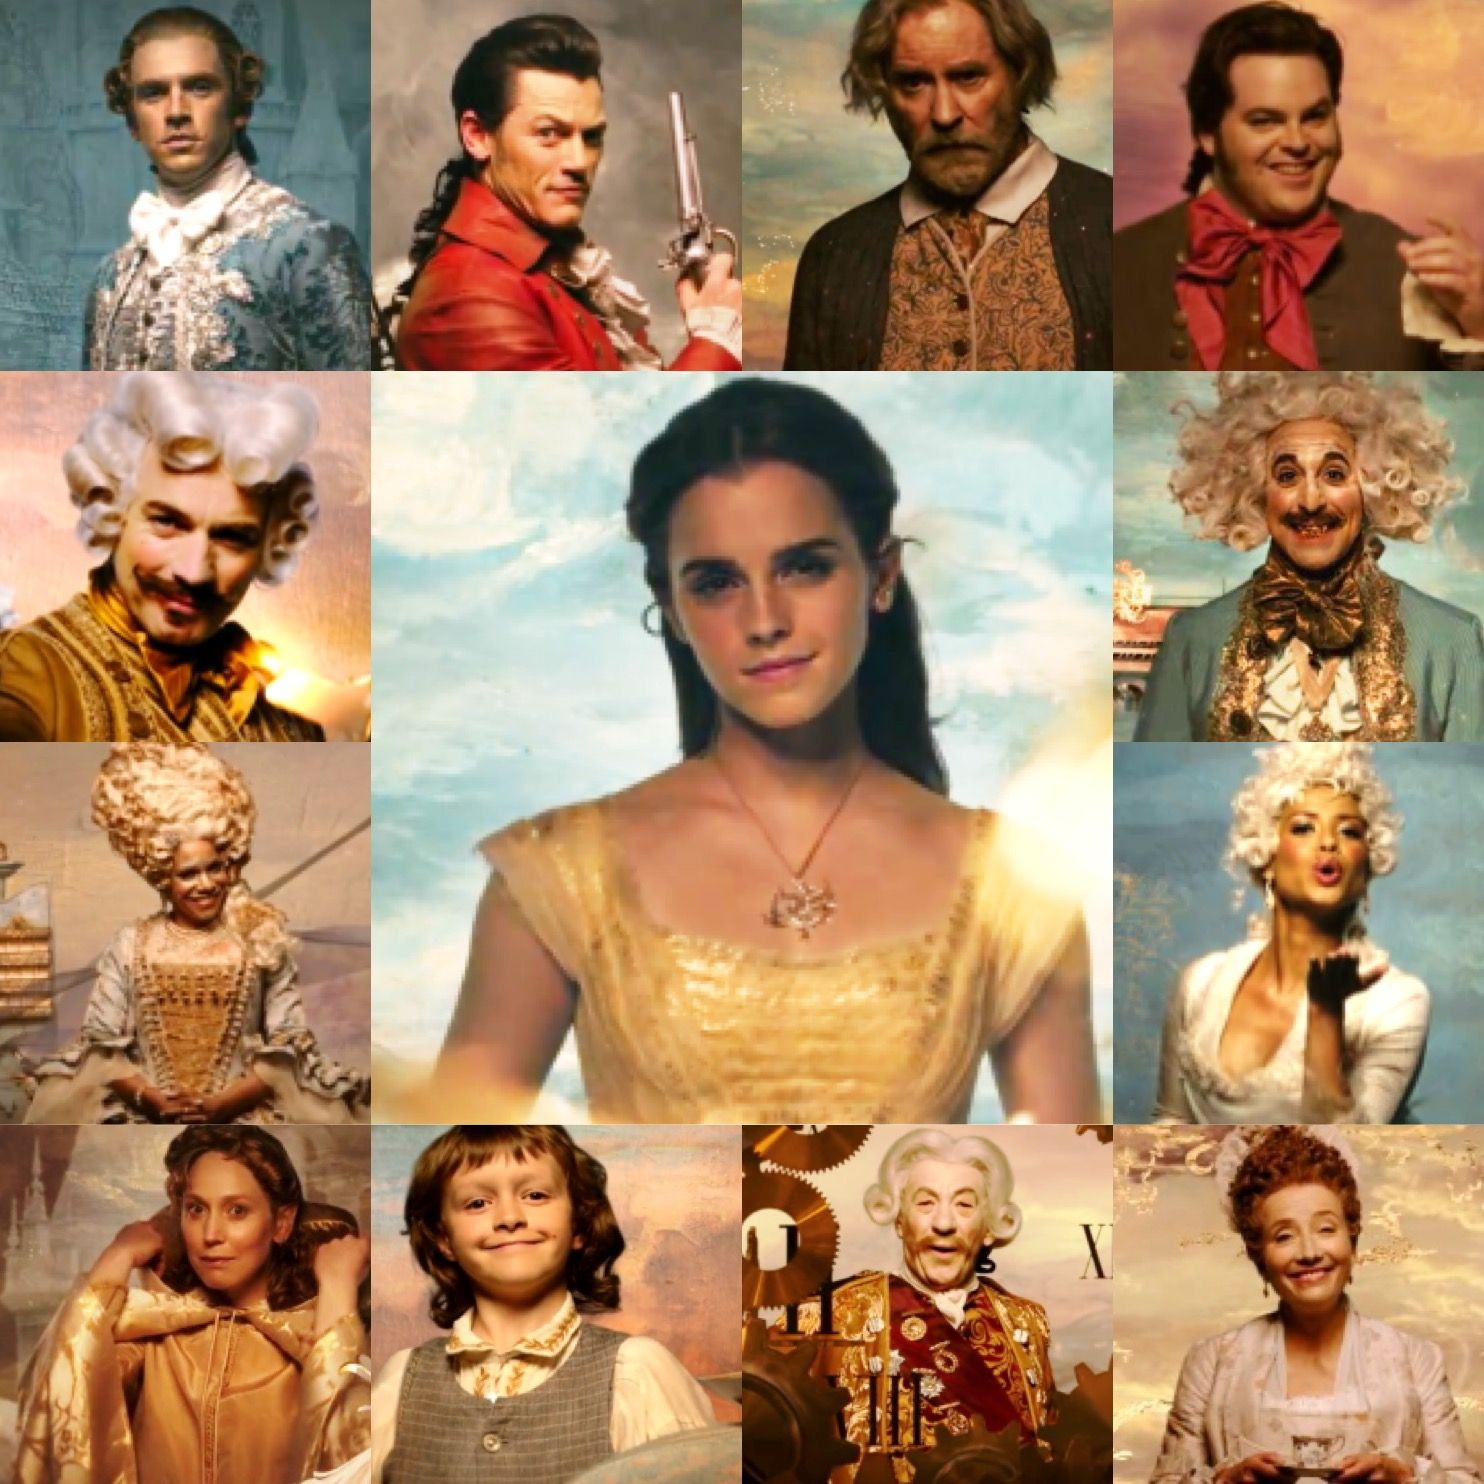 character analysis in beastly movie Working on an essay assignment about nick, daisy, or another character check out our guide to the great gatsby character analysis to get helpful tips.